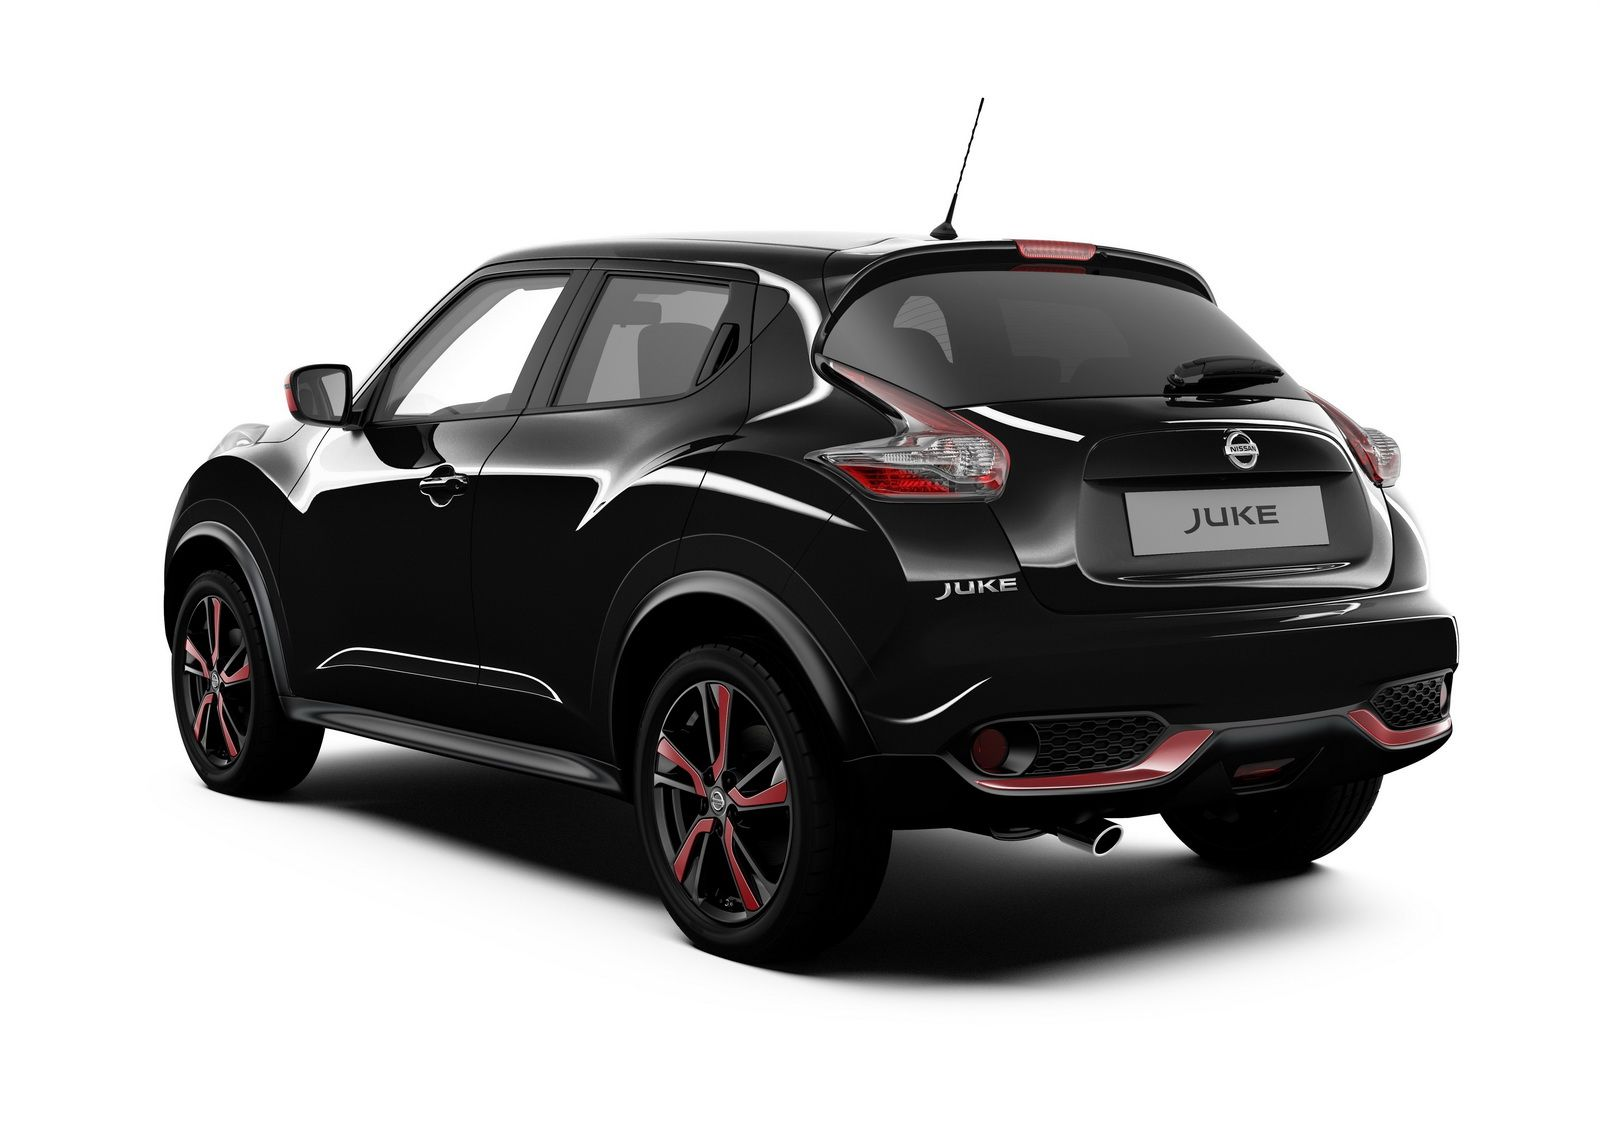 Nissan juke becomes more dynamic with new special edition